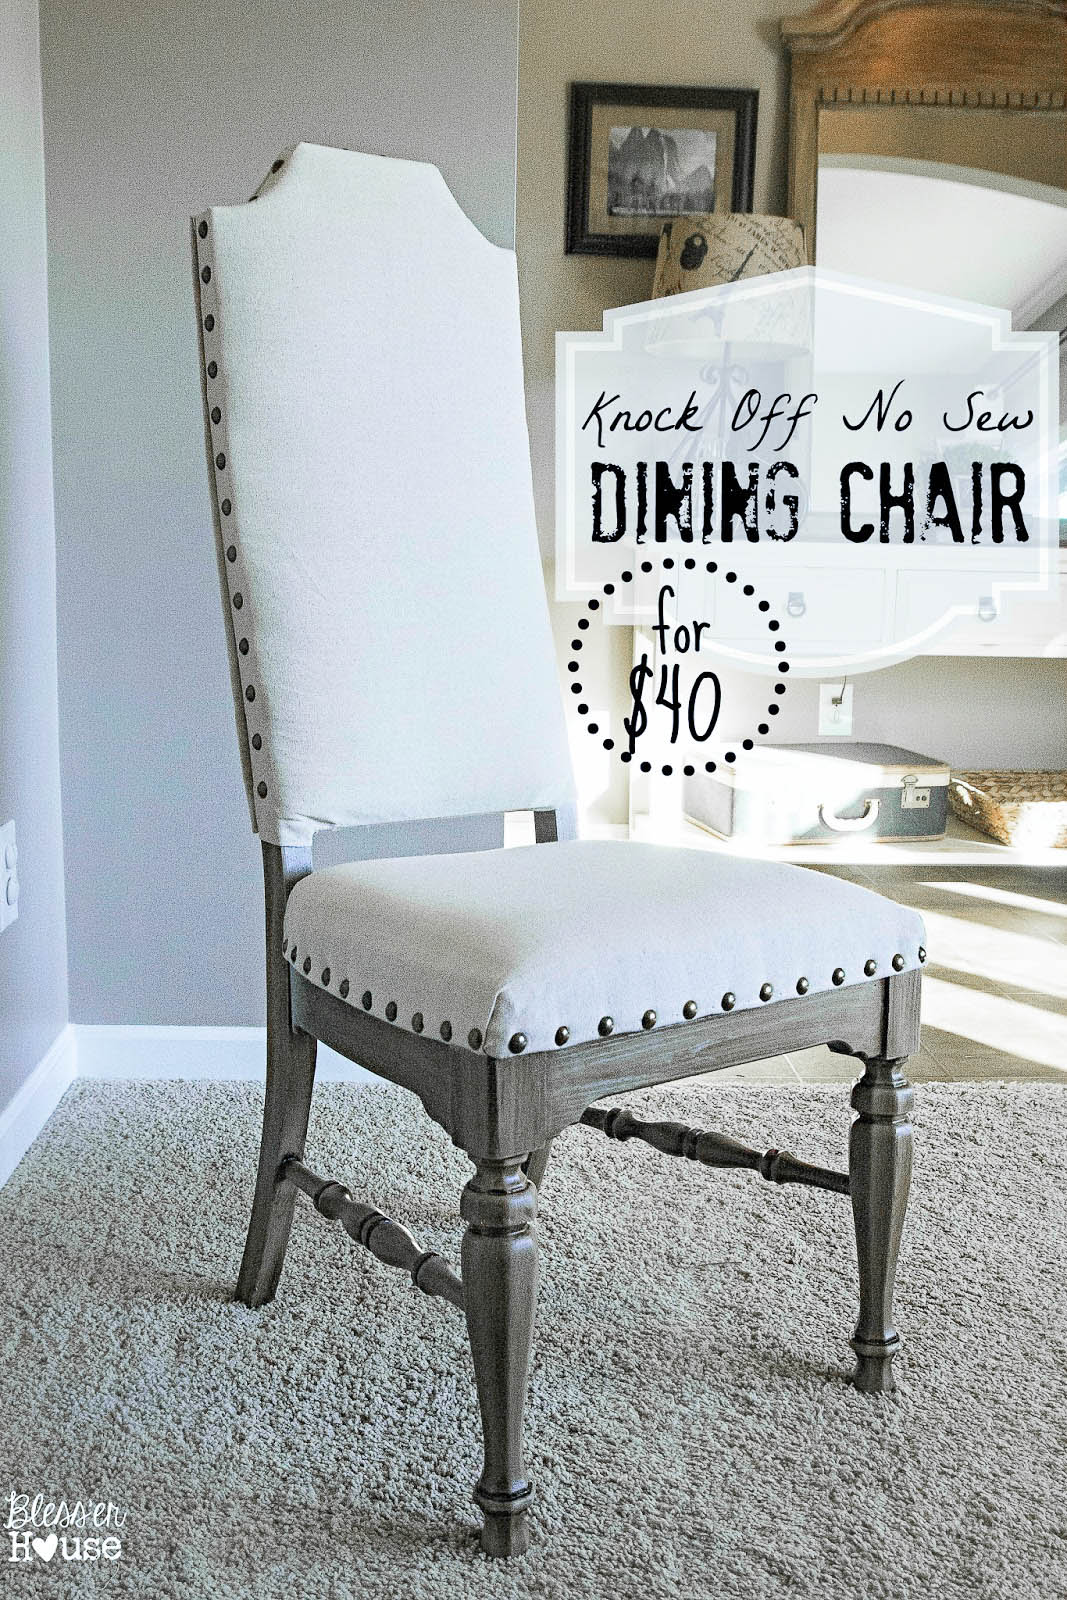 How To Create Pottery Barn And Restoration Hardware Knock Off No Sew Dining Chairs Using 1970s Castoff